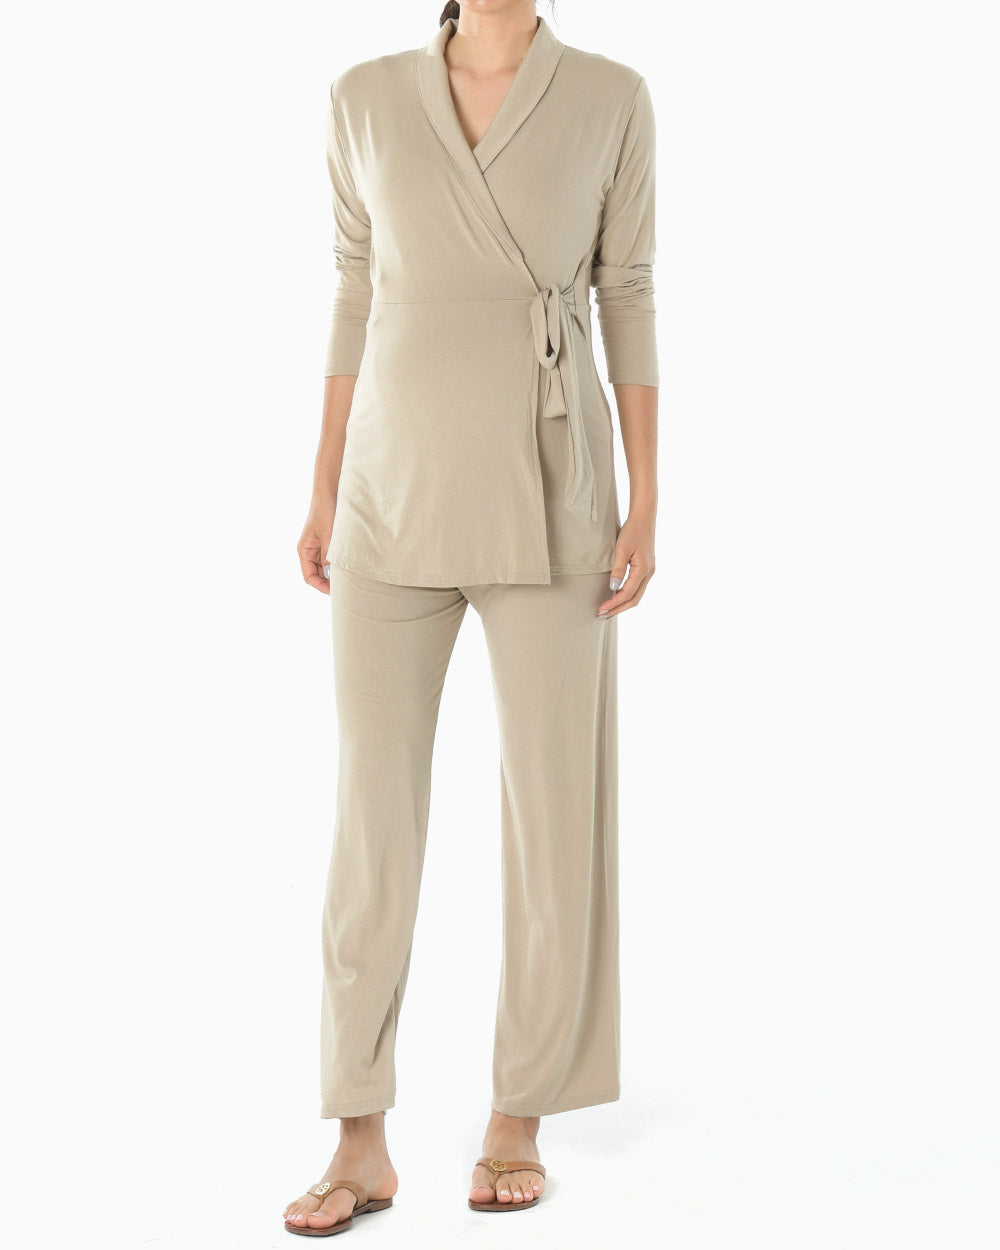 [EDITOR'S PICK] LUXE NURSING PJ SET